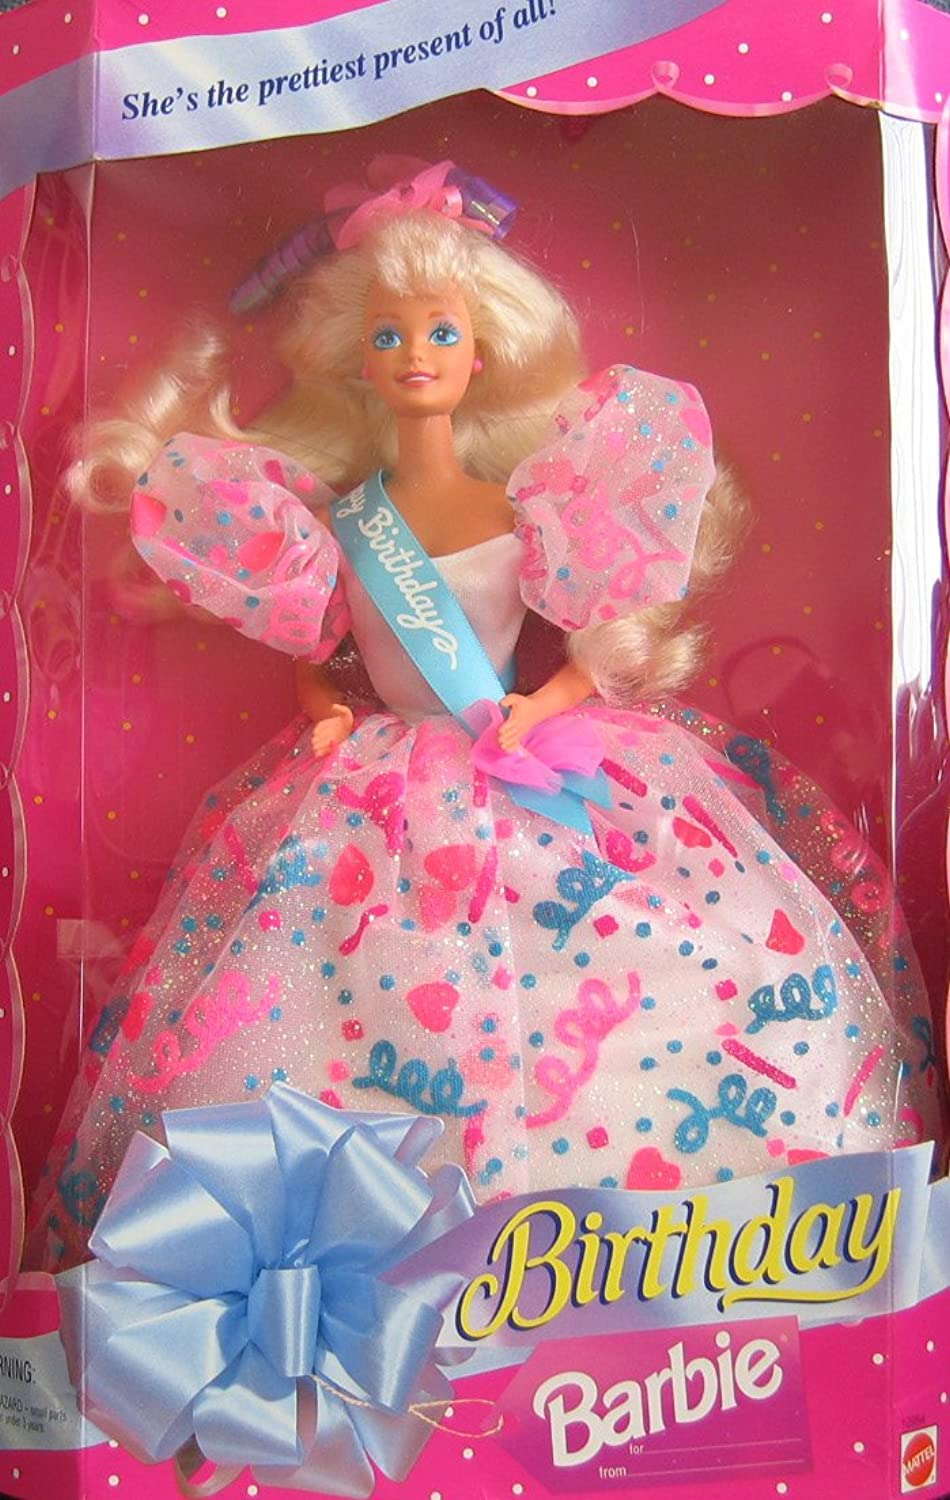 Birthday BARBIE Doll She's The Prettiest Present of All  (1994)